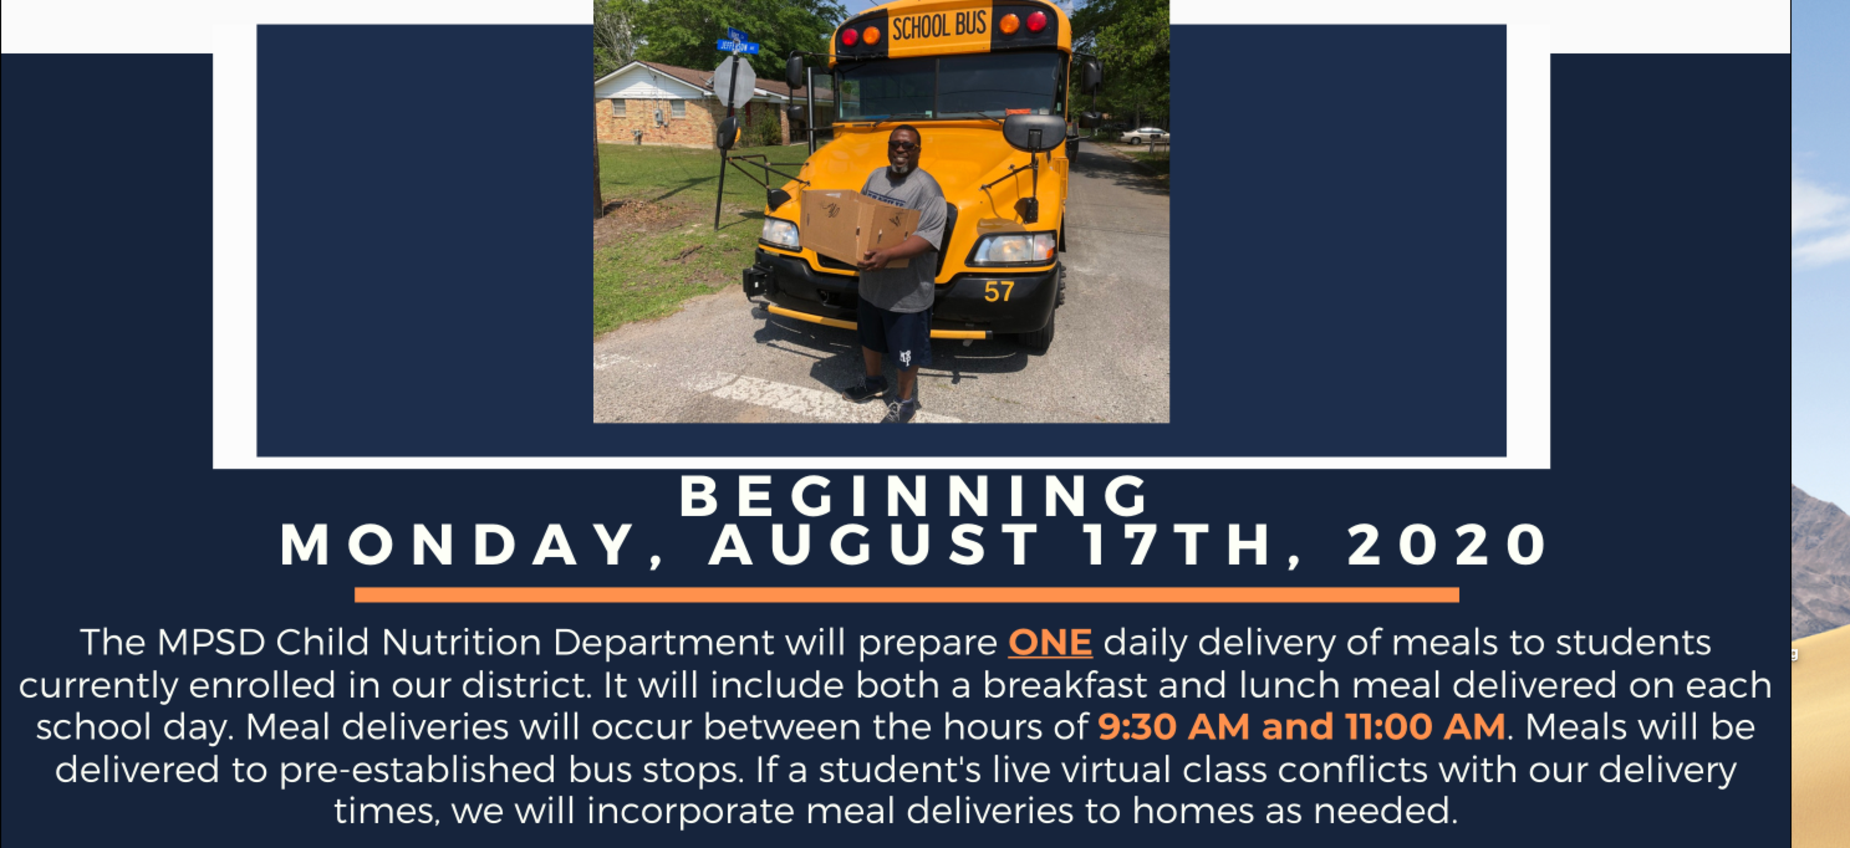 Meal deliveries will begin Monday, August 17th.